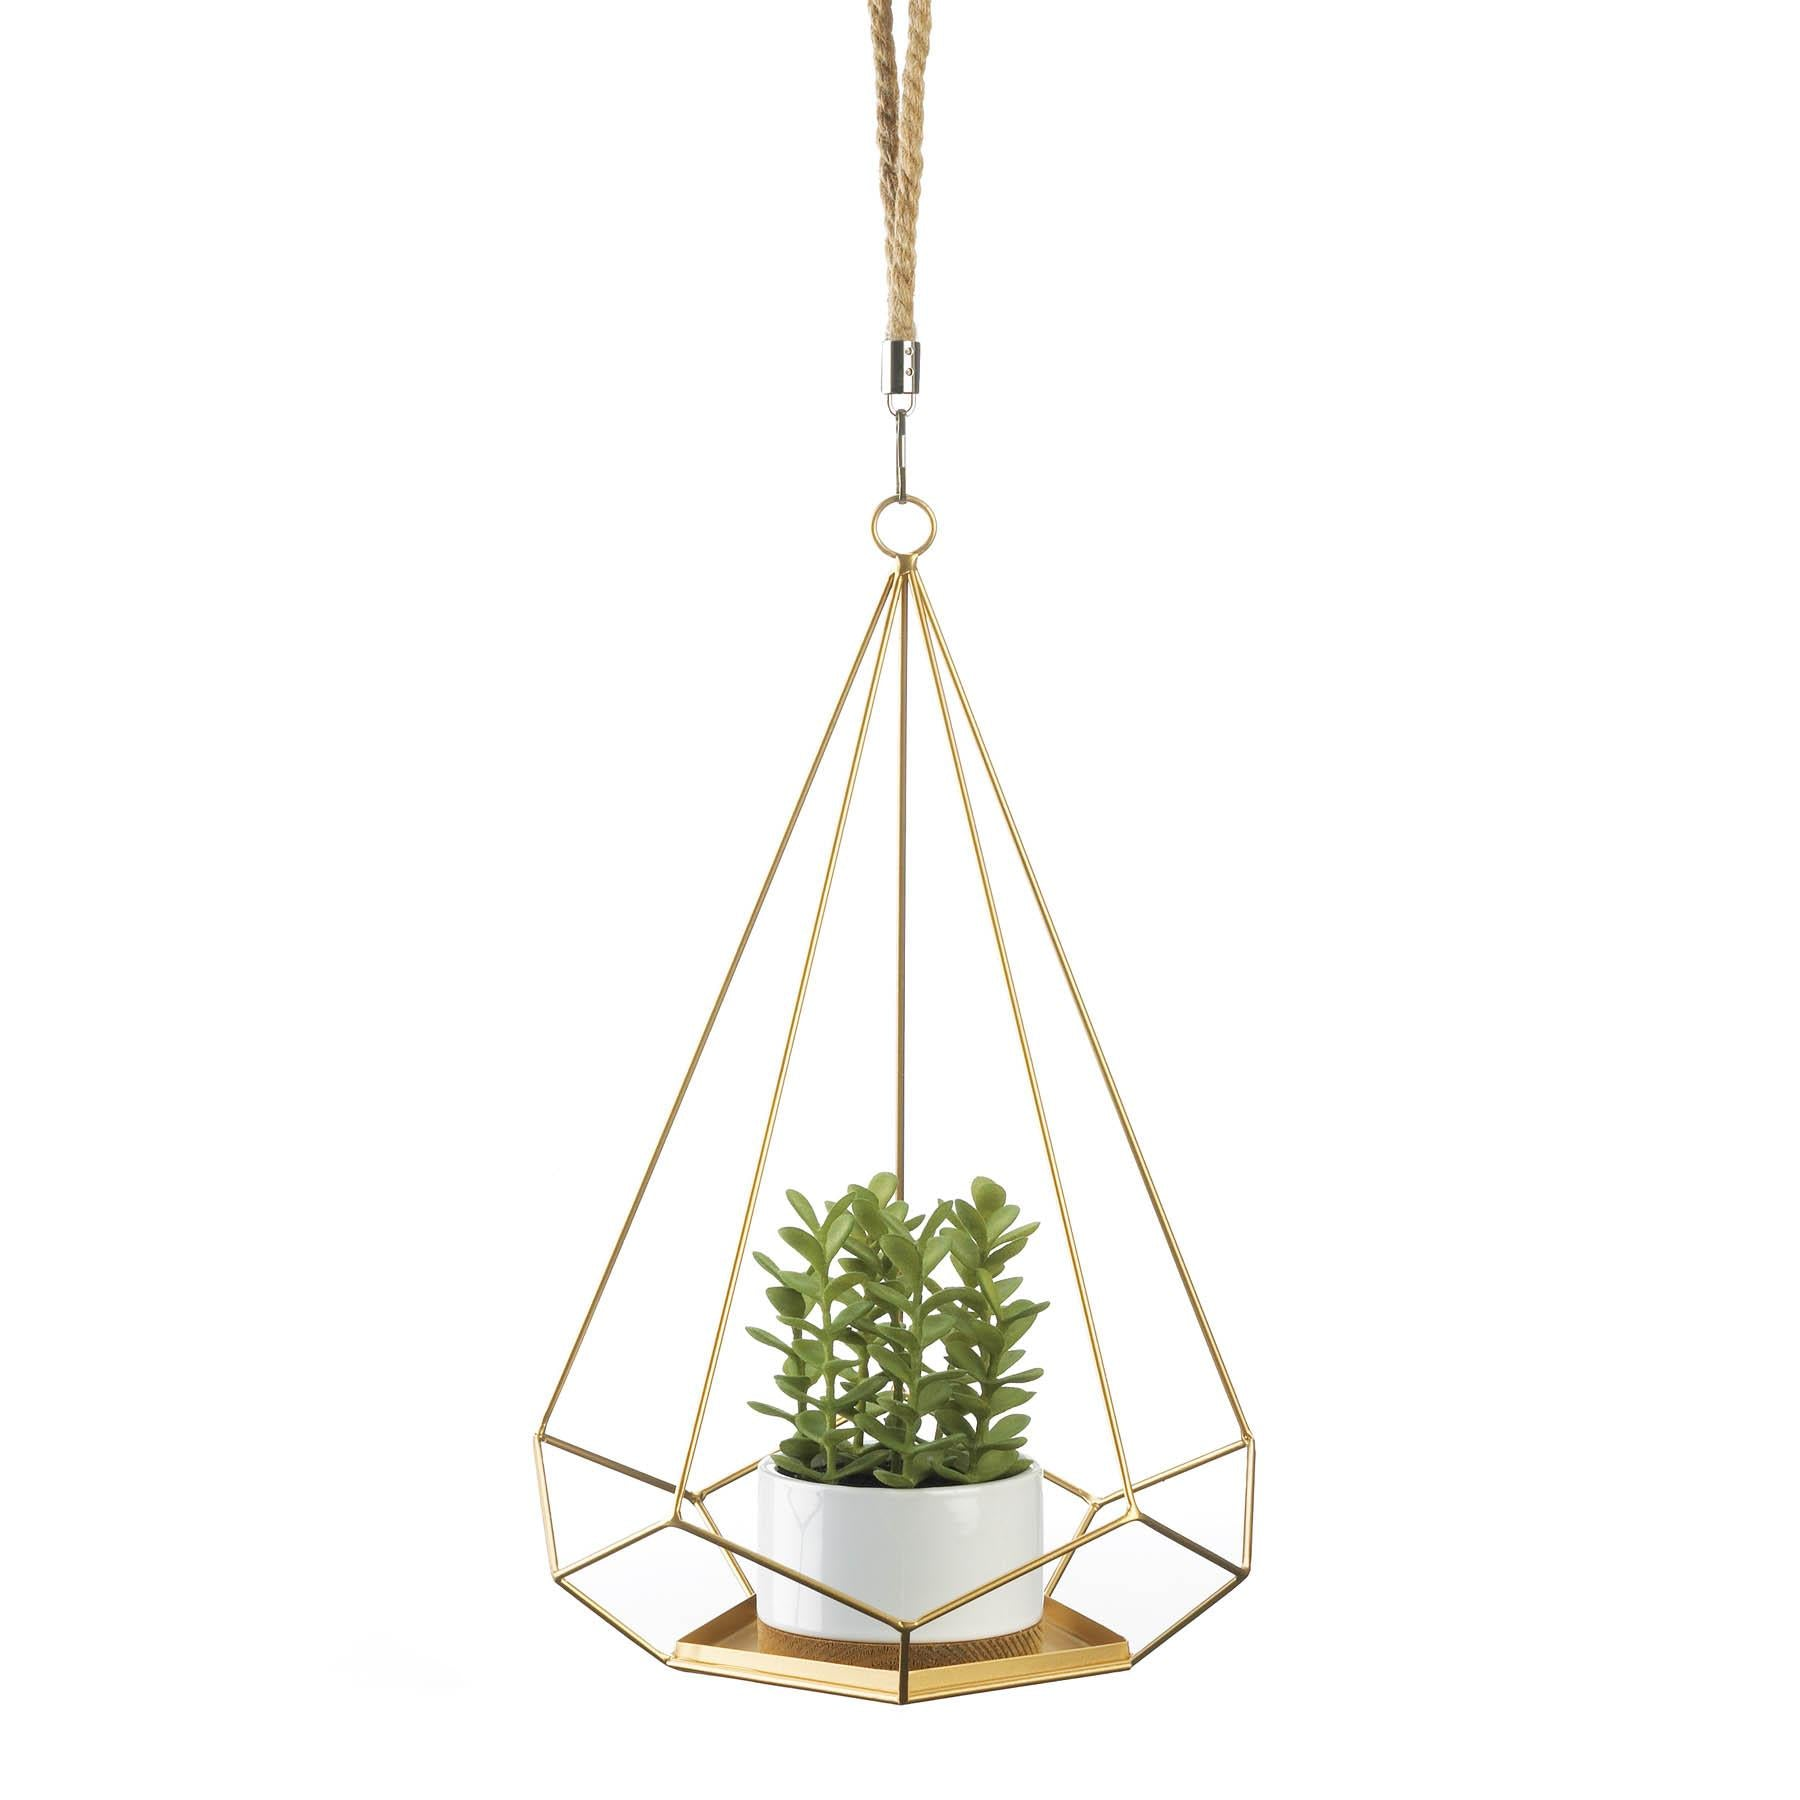 Two Charmed Gals Prism Hanging Plant Holder